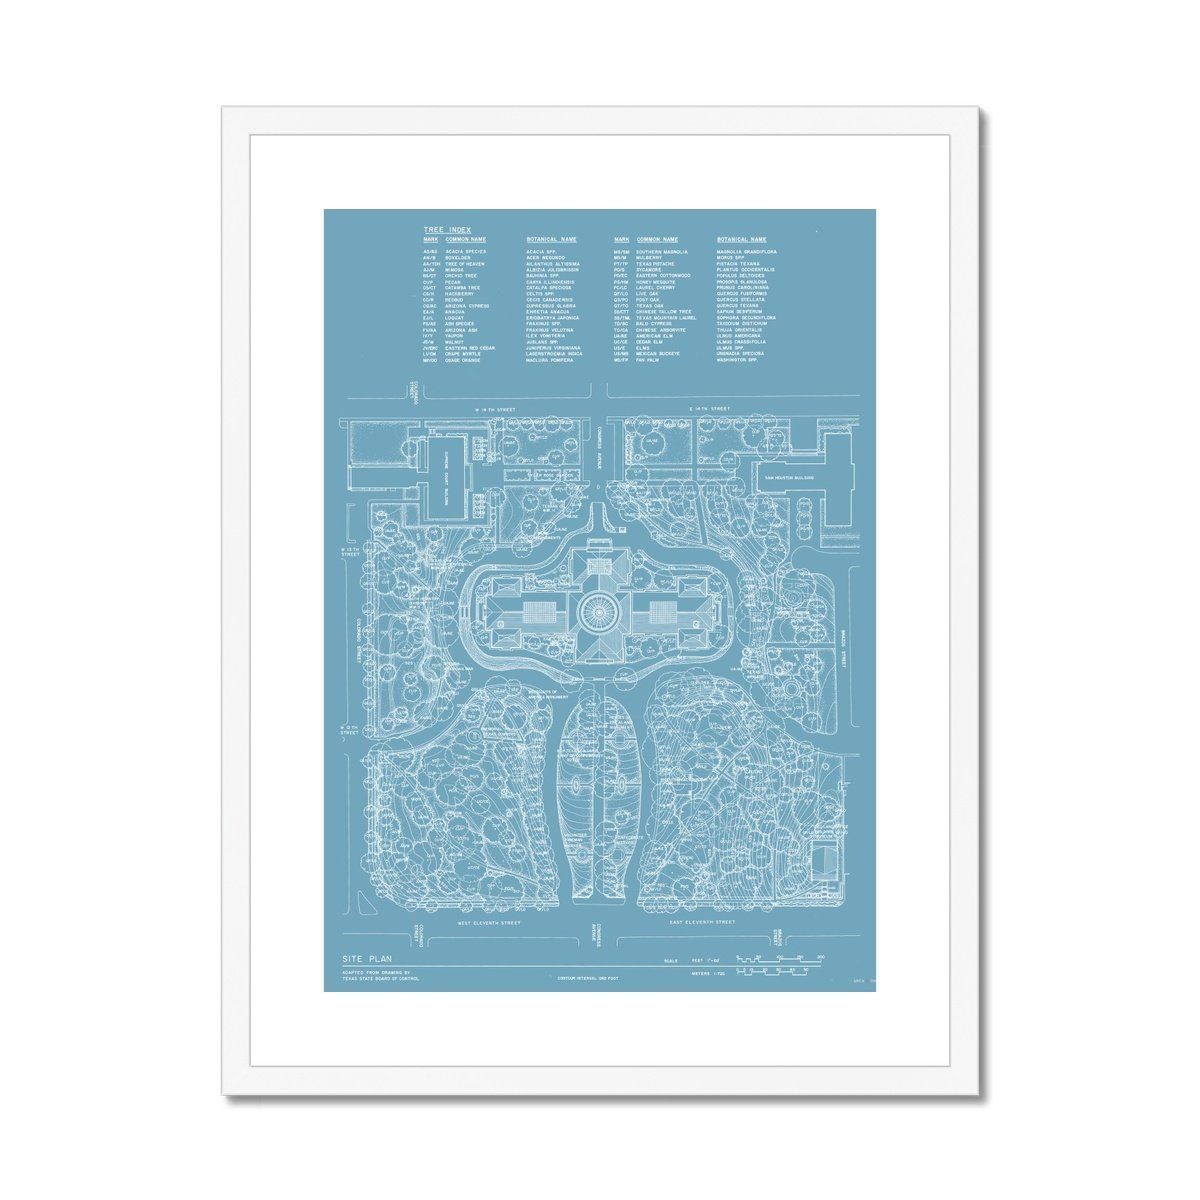 The Texas State Capitol Building - Site and Landscaping Plan - Blue - Framed & Mounted Print - 18x24 / White Frame